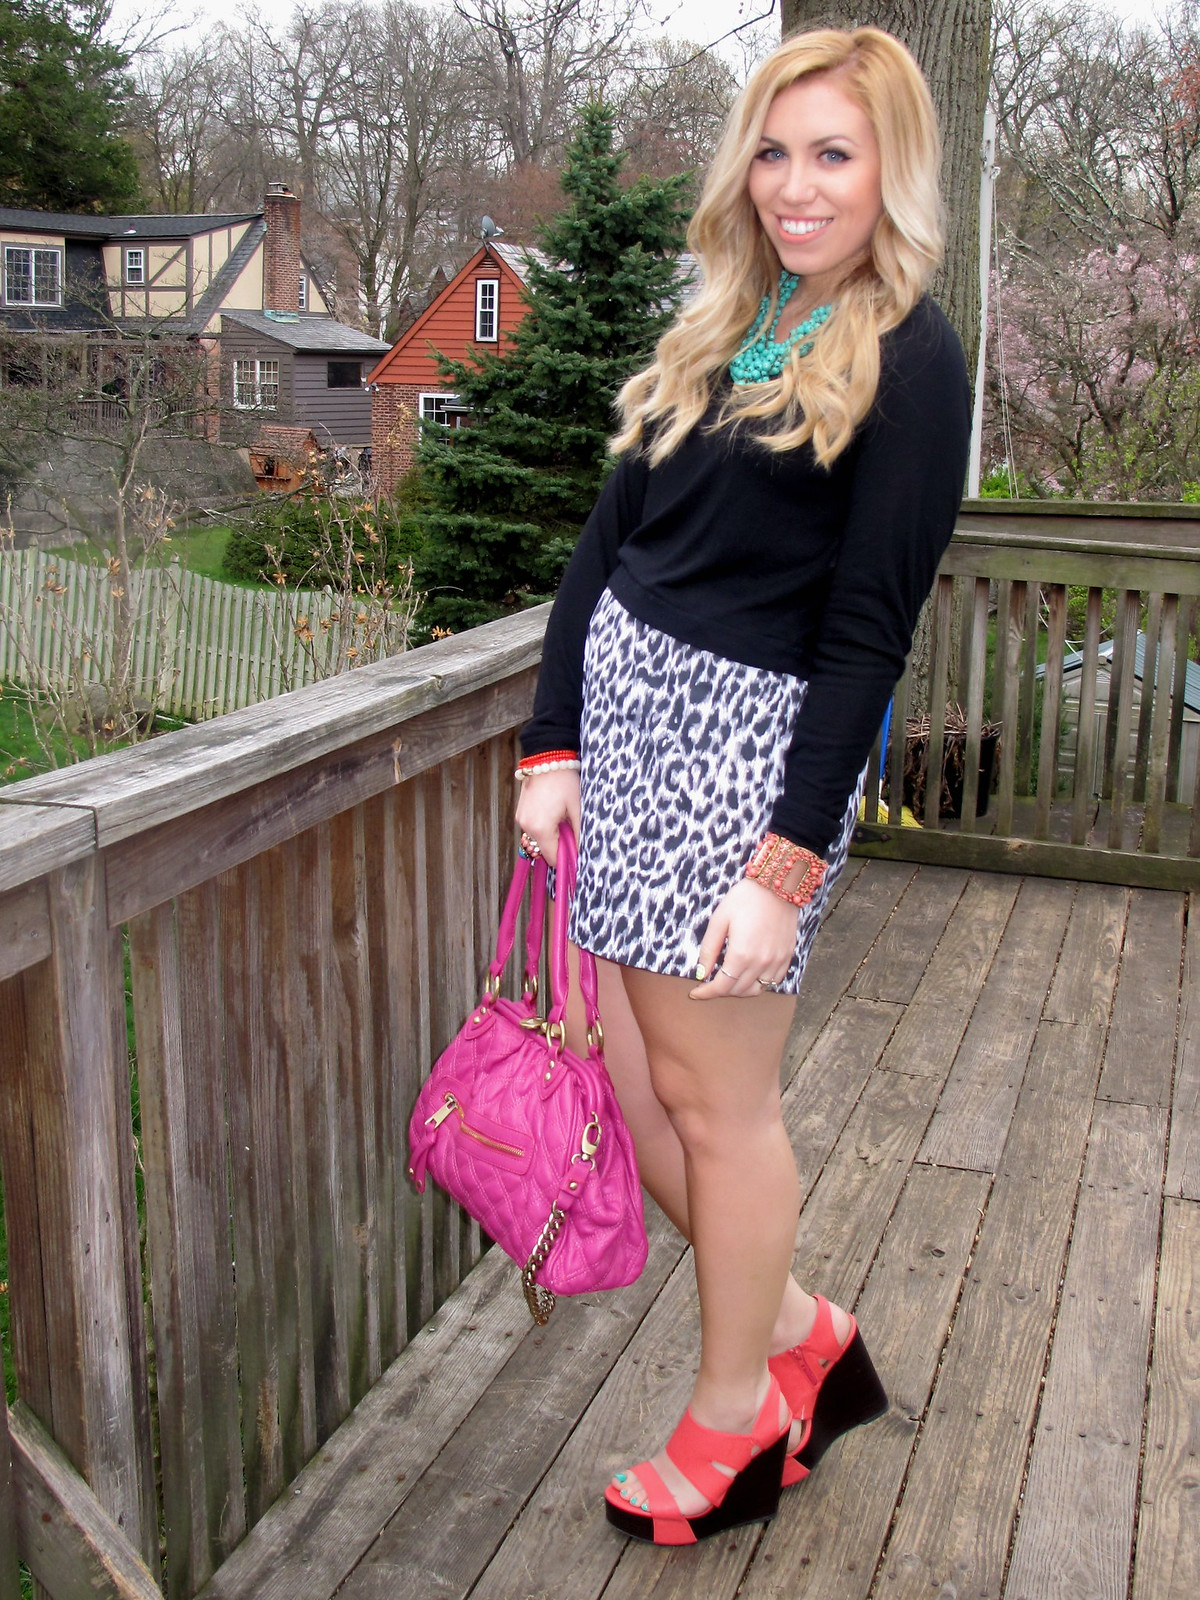 2012 Leopard Mini Skirt Outfit Inspiration | A Look Back at 10 Years of Blogging Living After Midnite Blogger Jackie Giardina